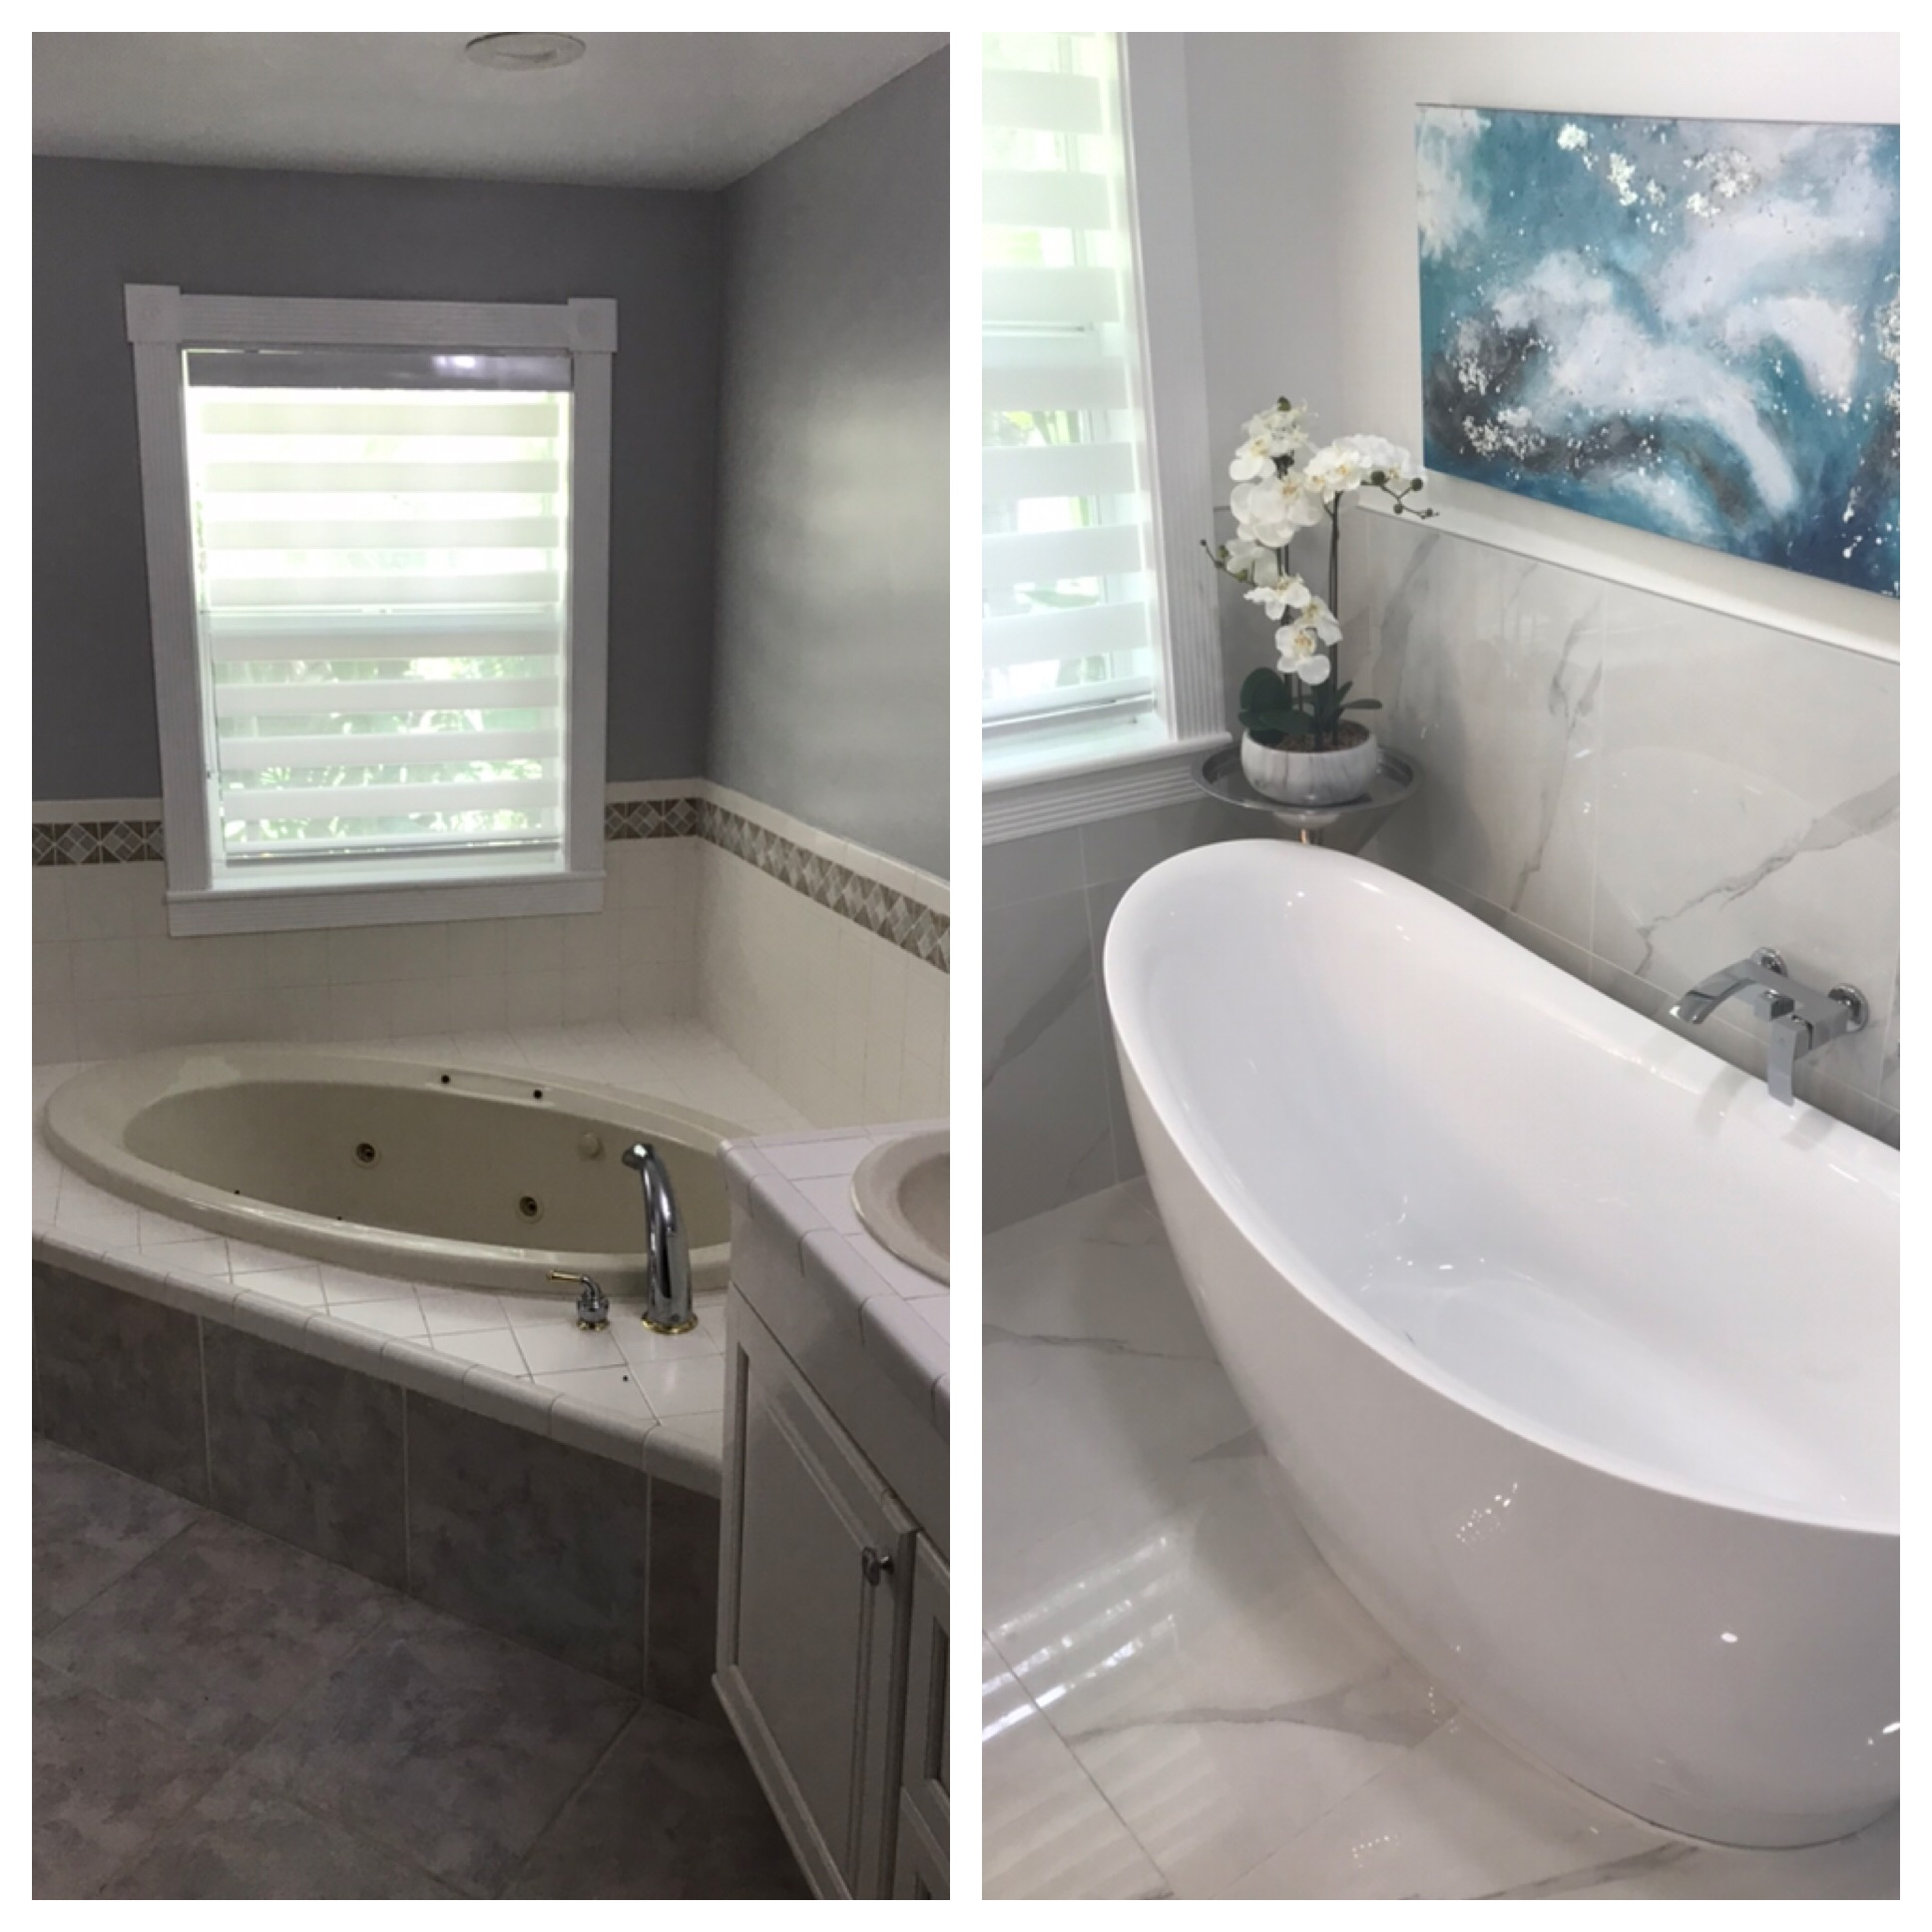 sheffield_construction_snider_project_before_after07.JPG